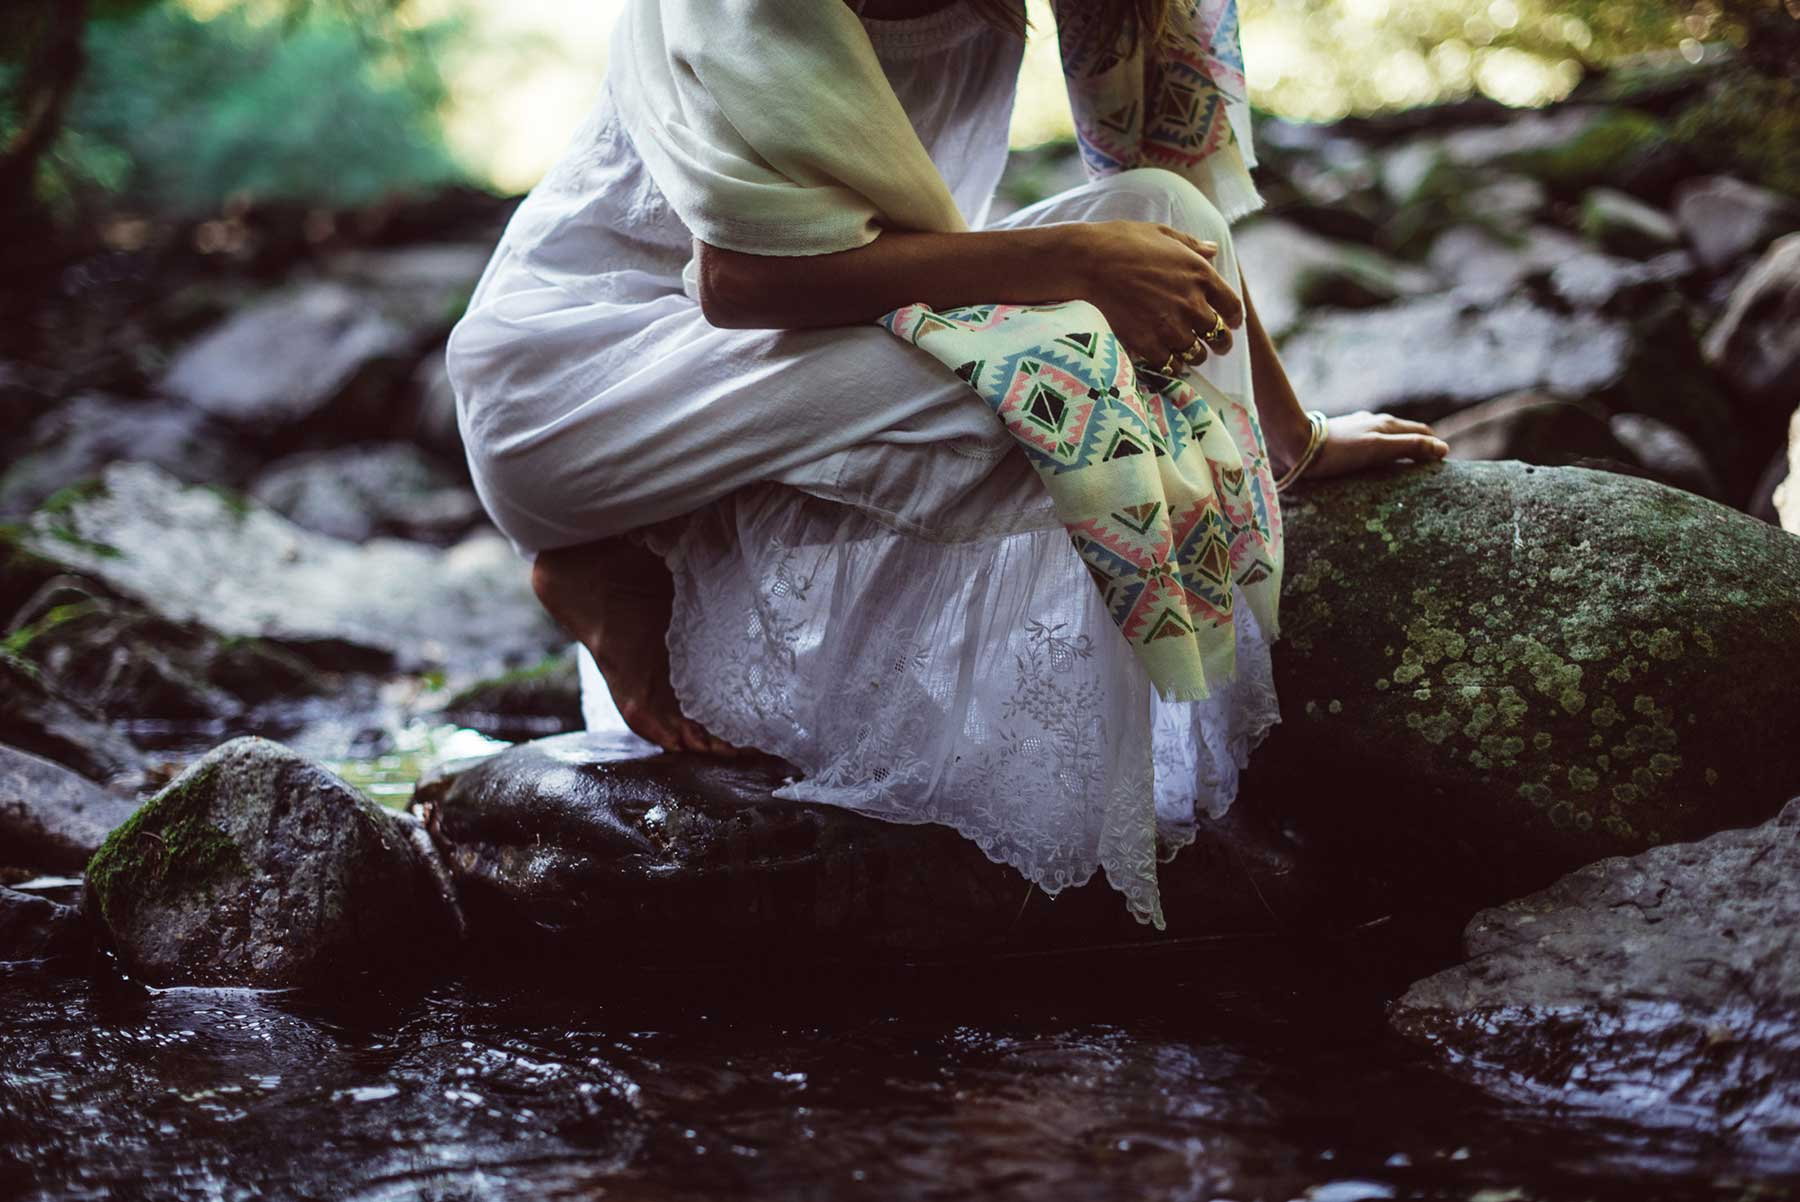 Kneeling by a stream in Beshlie Mckelvie's ethical fashion dresses and scarves.